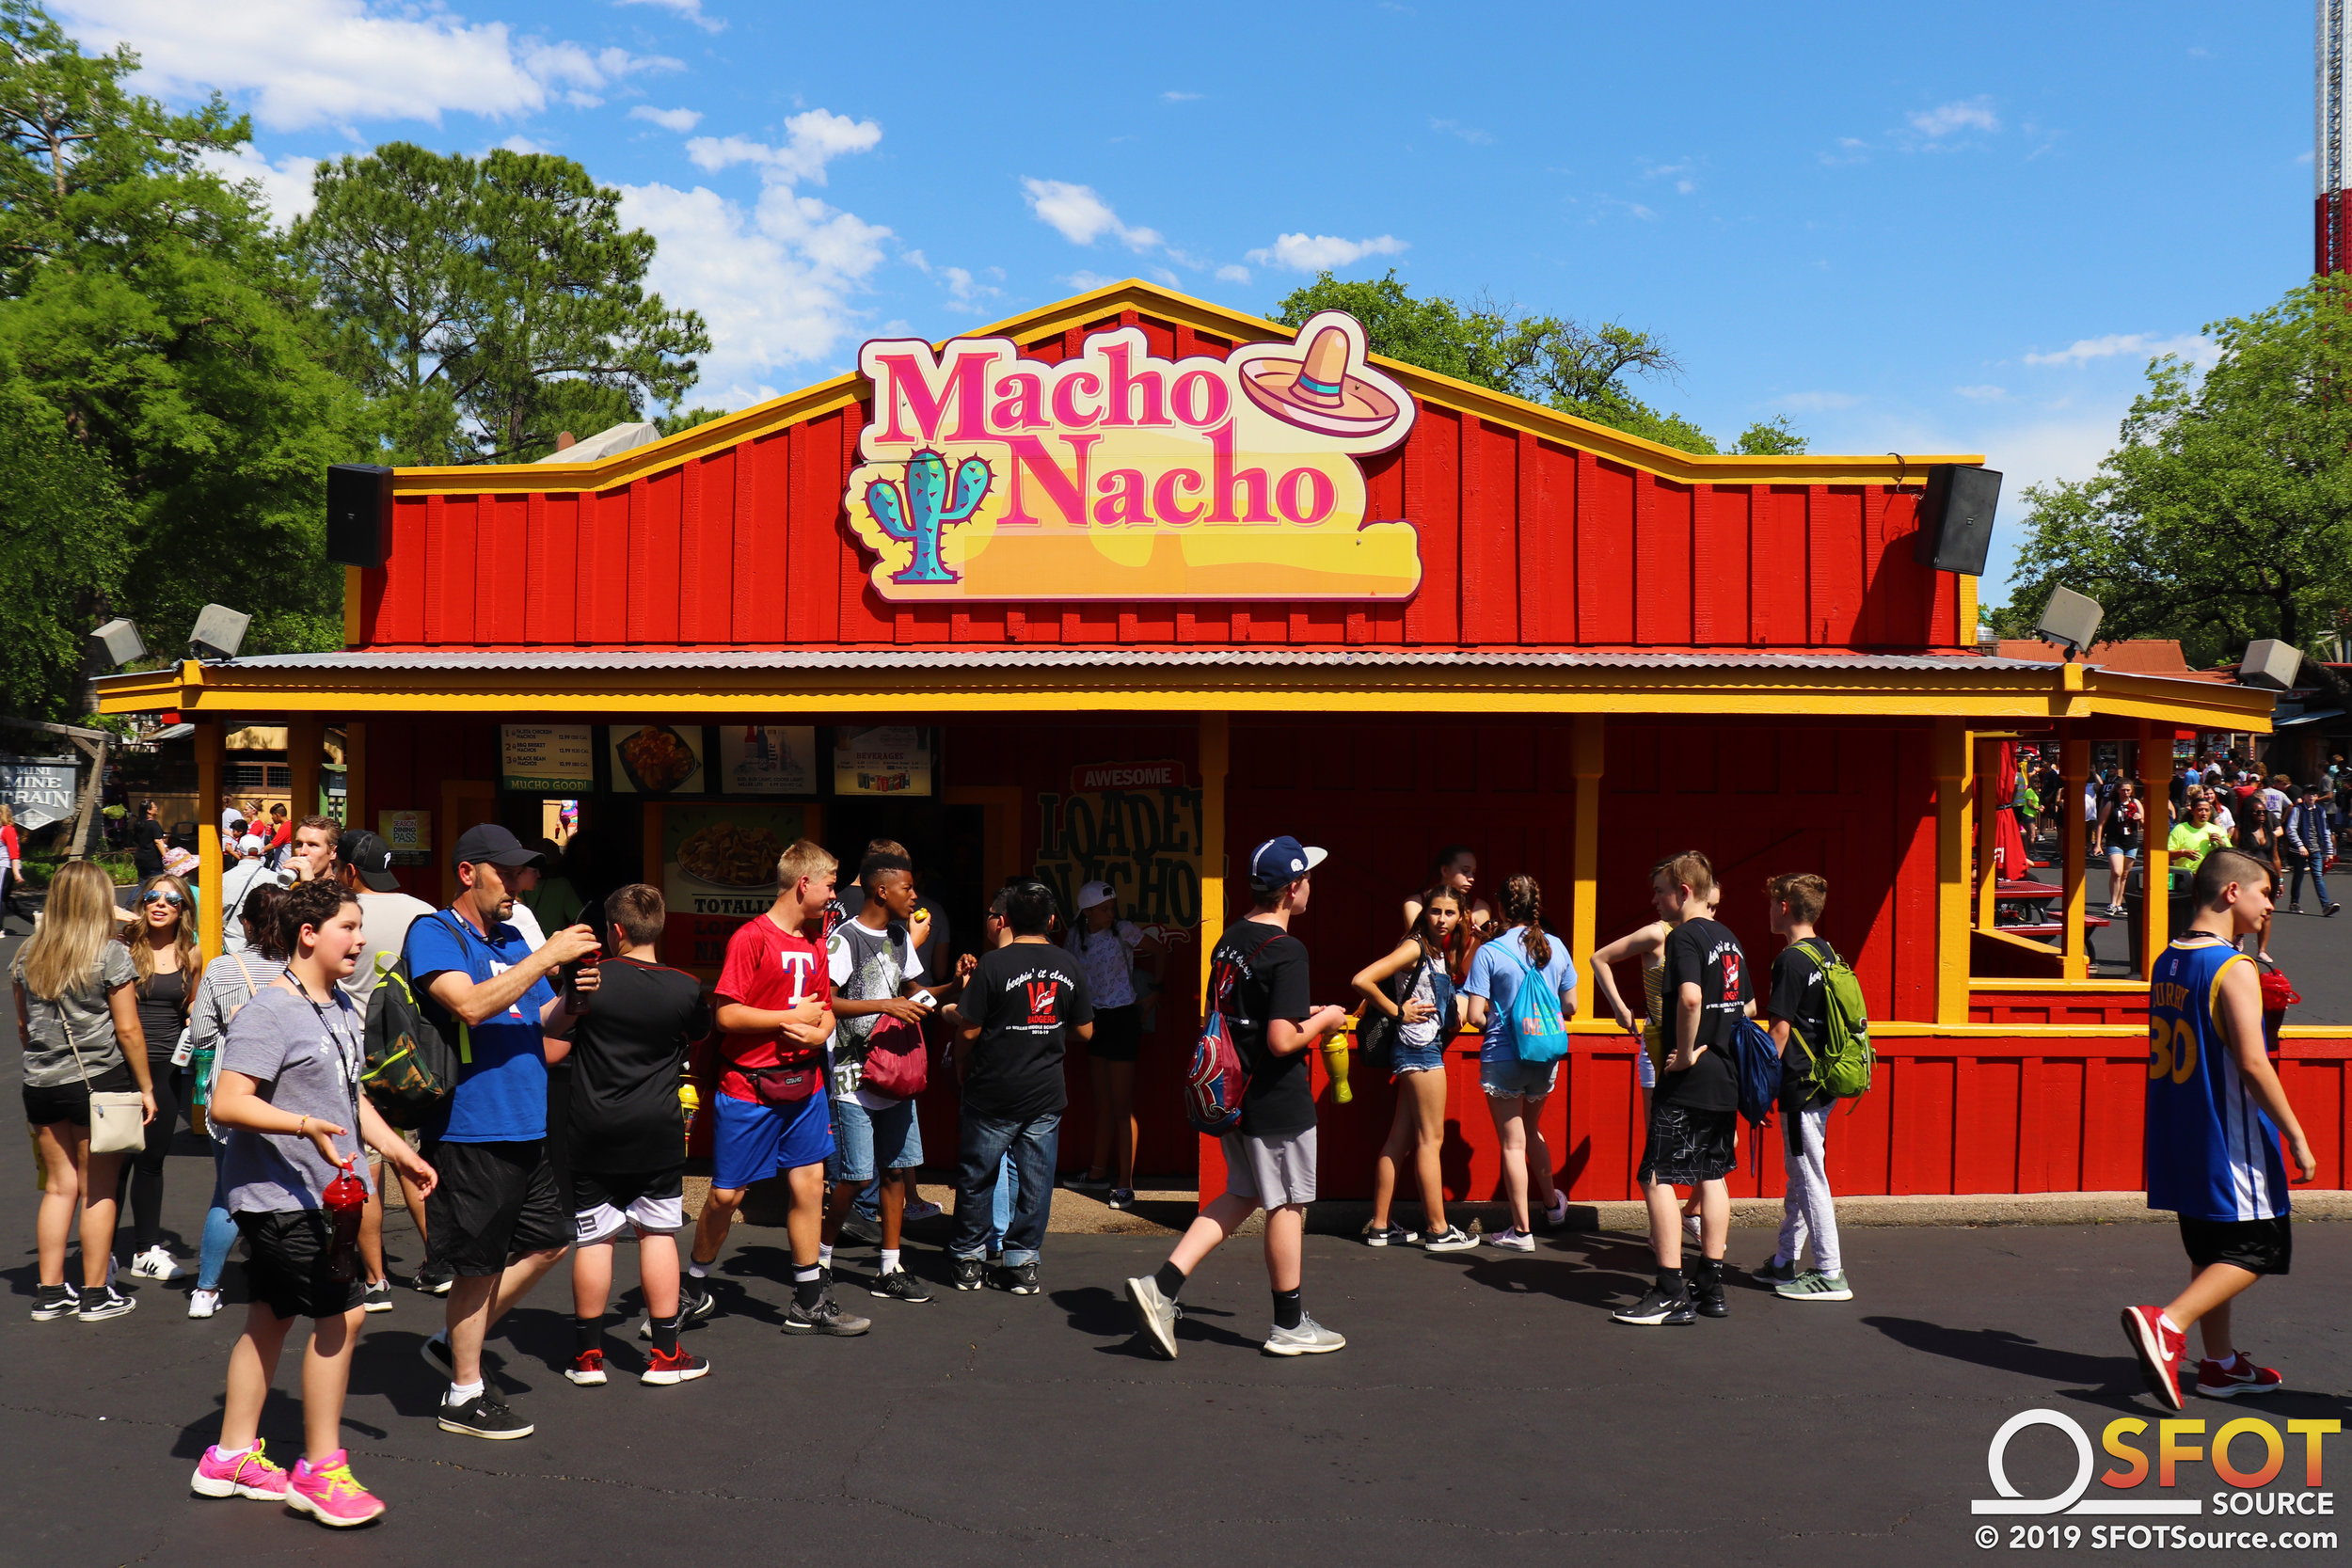 Macho Nacho has an outdoor seating area available.